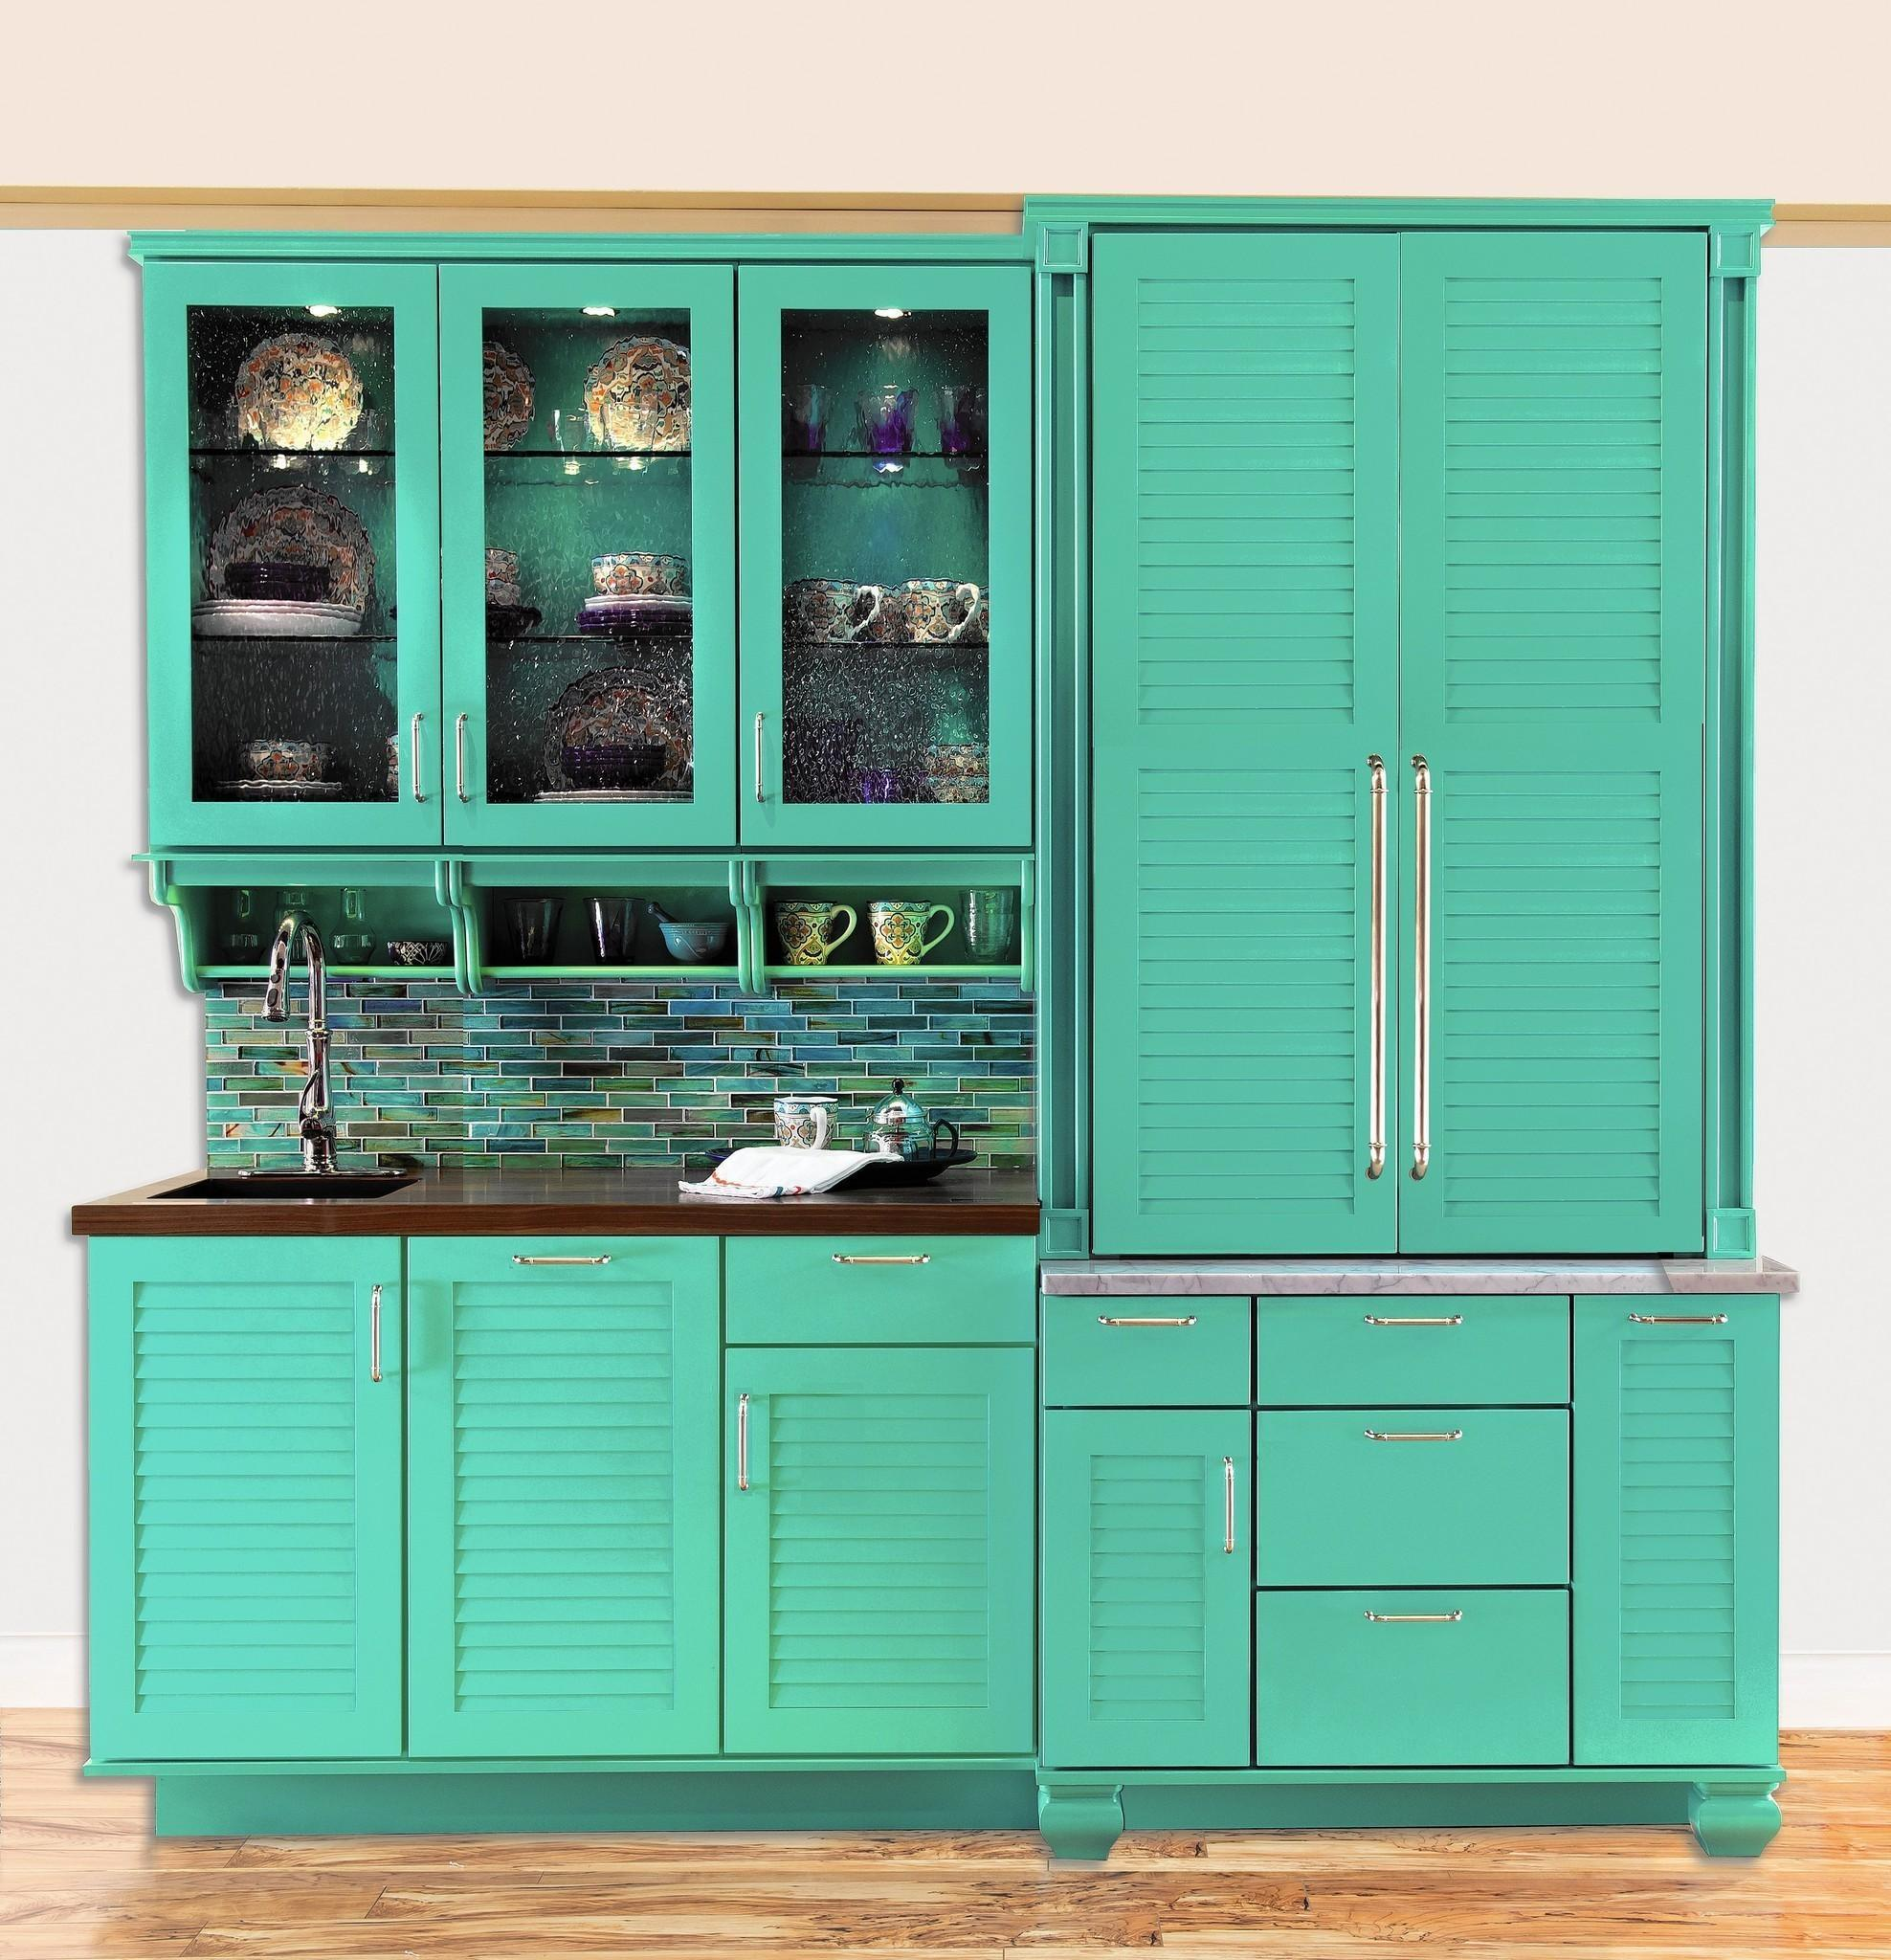 Consumers Kitchen Cabinets: Color Comes To The Kitchen